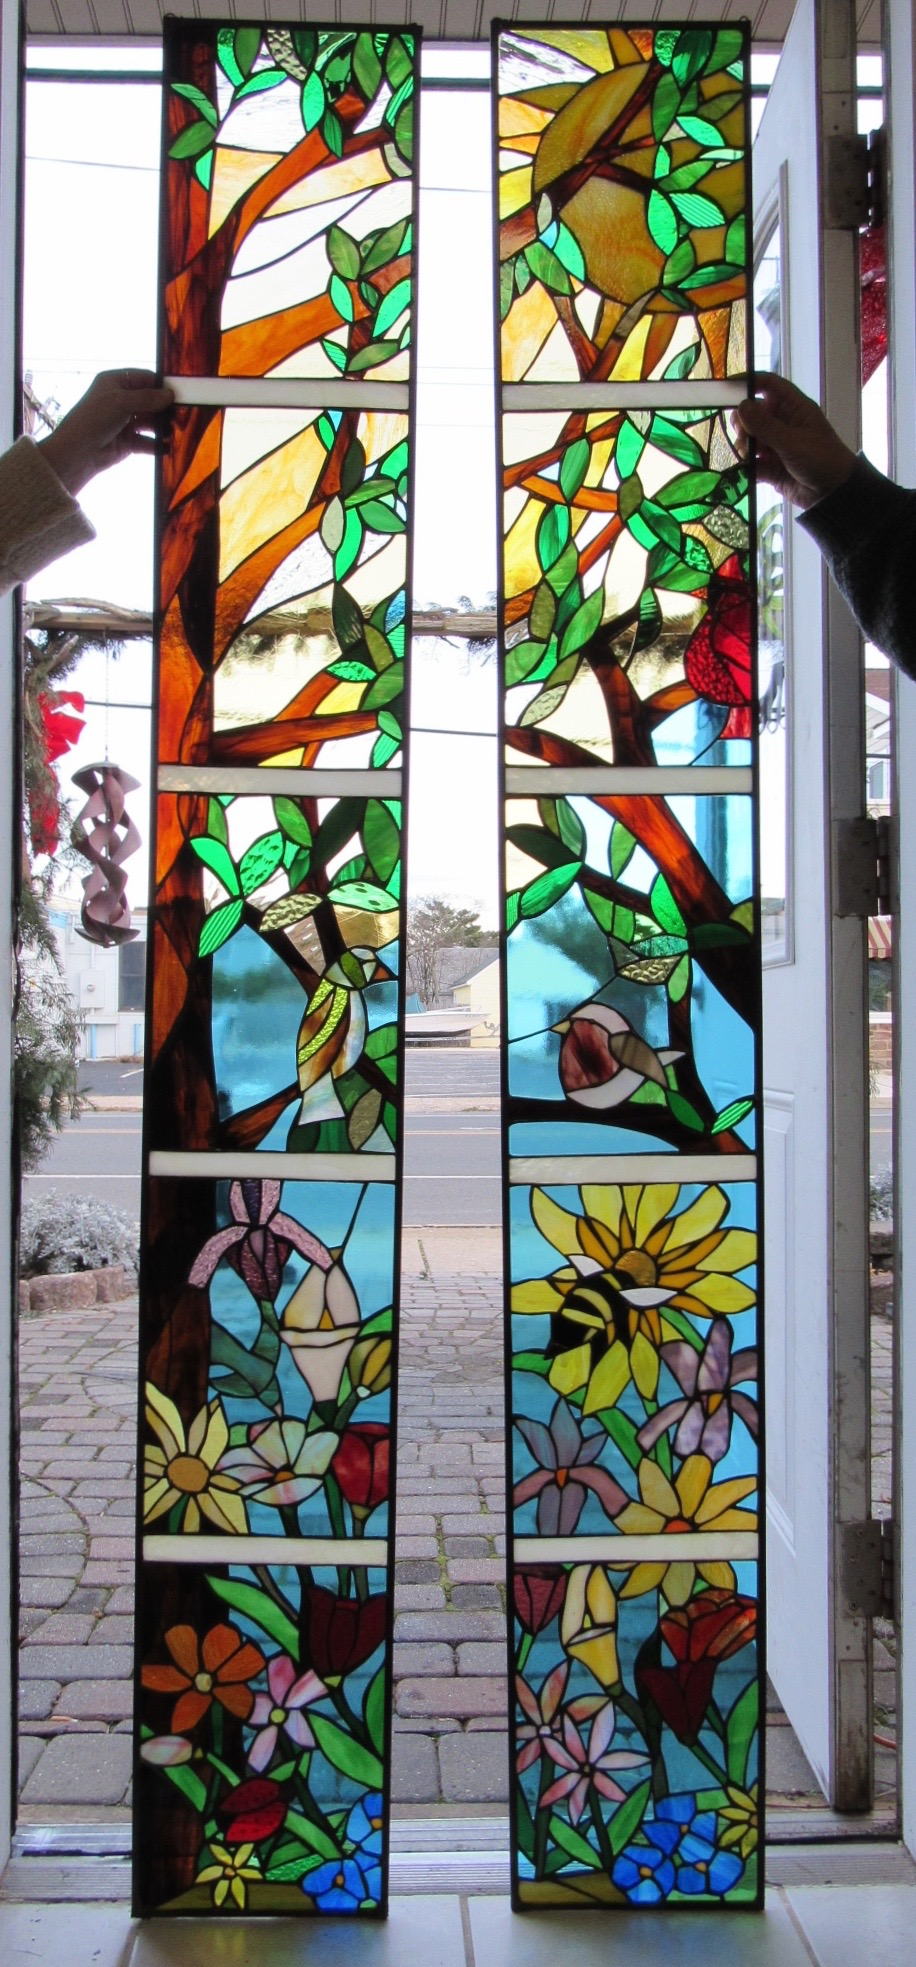 Flowers Birds and Bees Custom Stained Glass Sidelight Windows.Onders 1.jpg